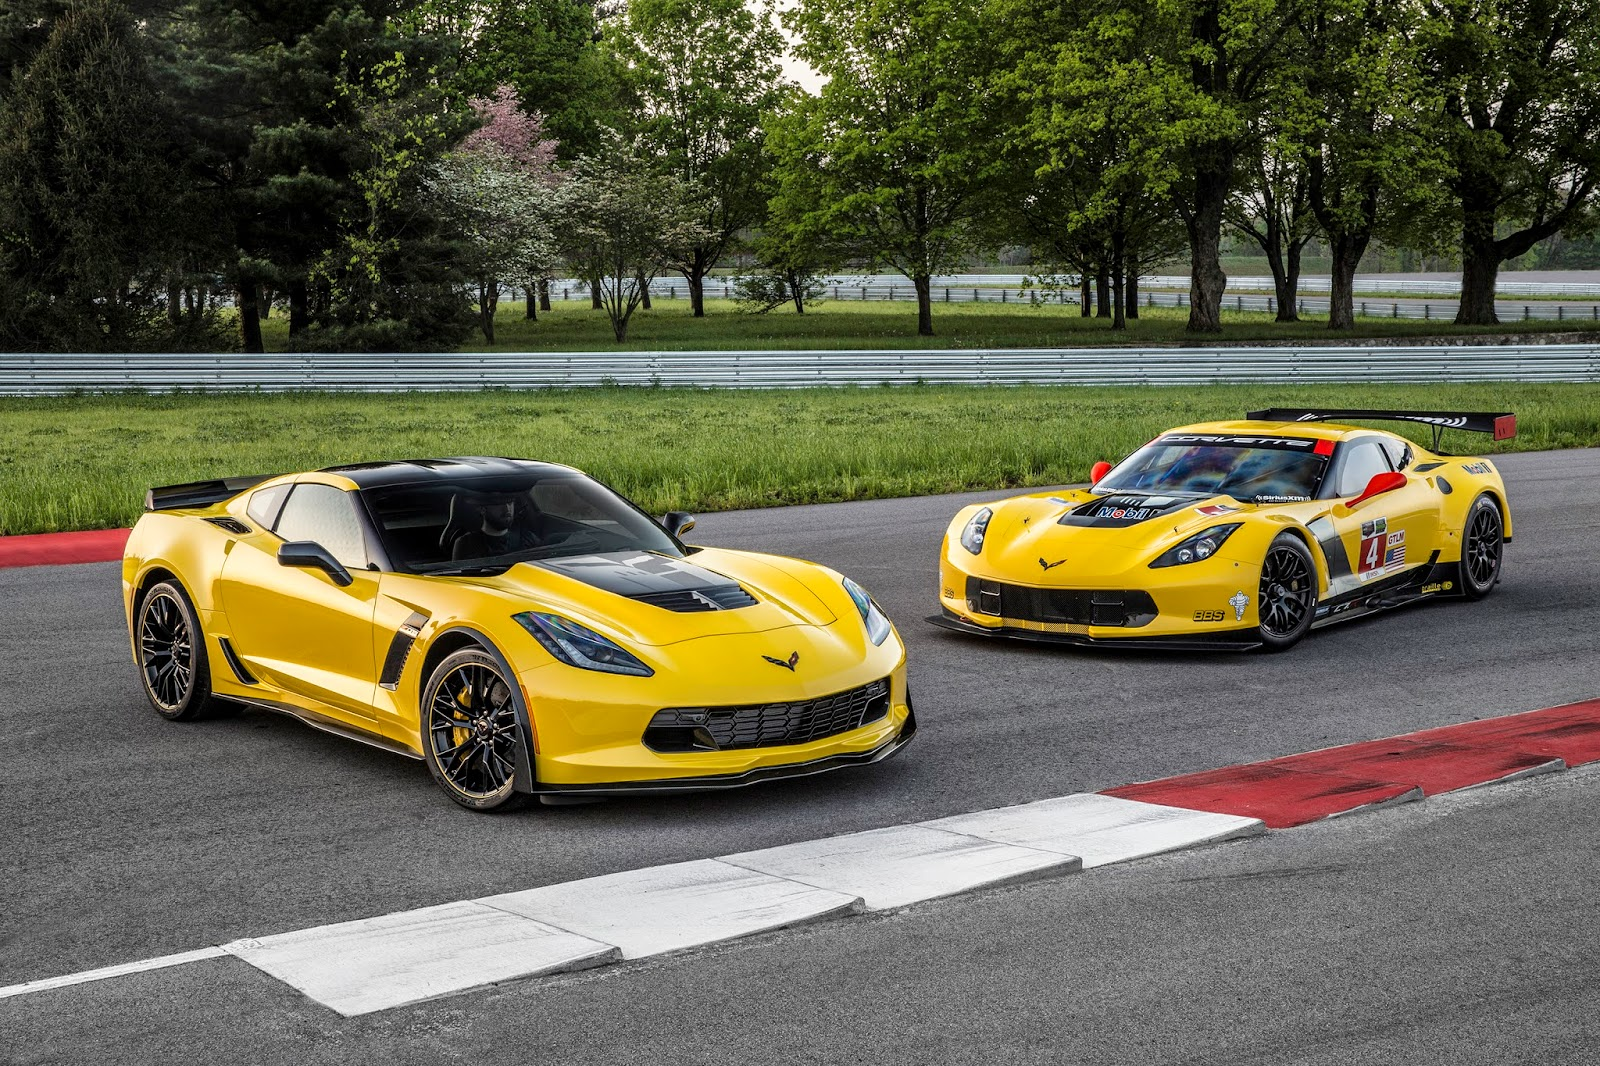 prix corvette z06 corvette c6 z06 fiche technique prix performances gm 39 s mark reuss to pace. Black Bedroom Furniture Sets. Home Design Ideas